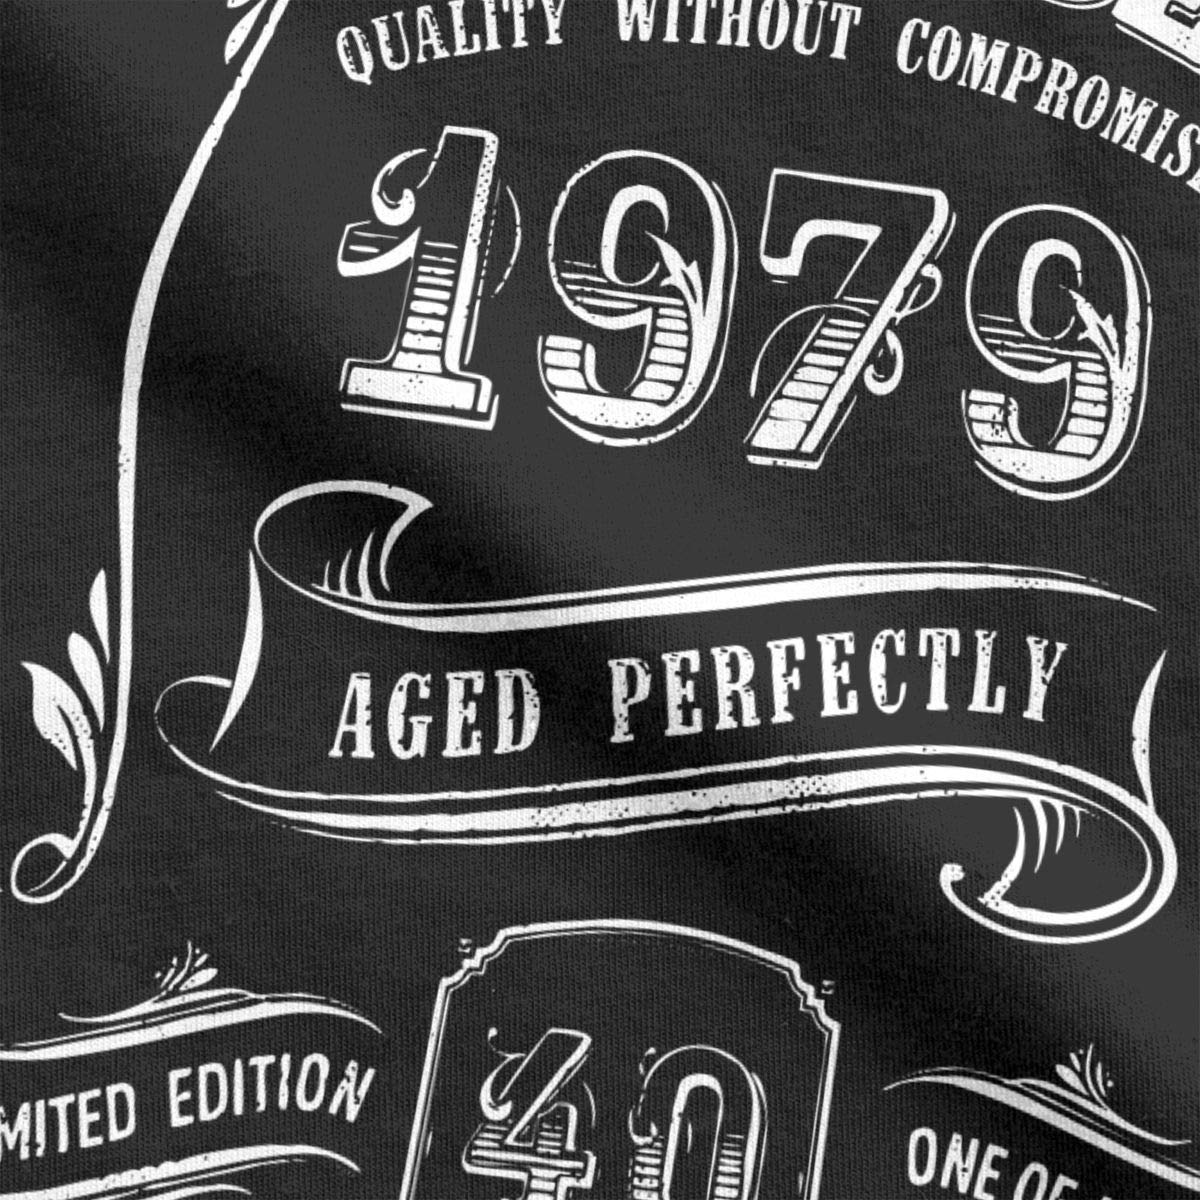 PRINTER77 Gold Vintage 1979 Age Perfect Graphic T Shirt 40th Birthday Gift for Men